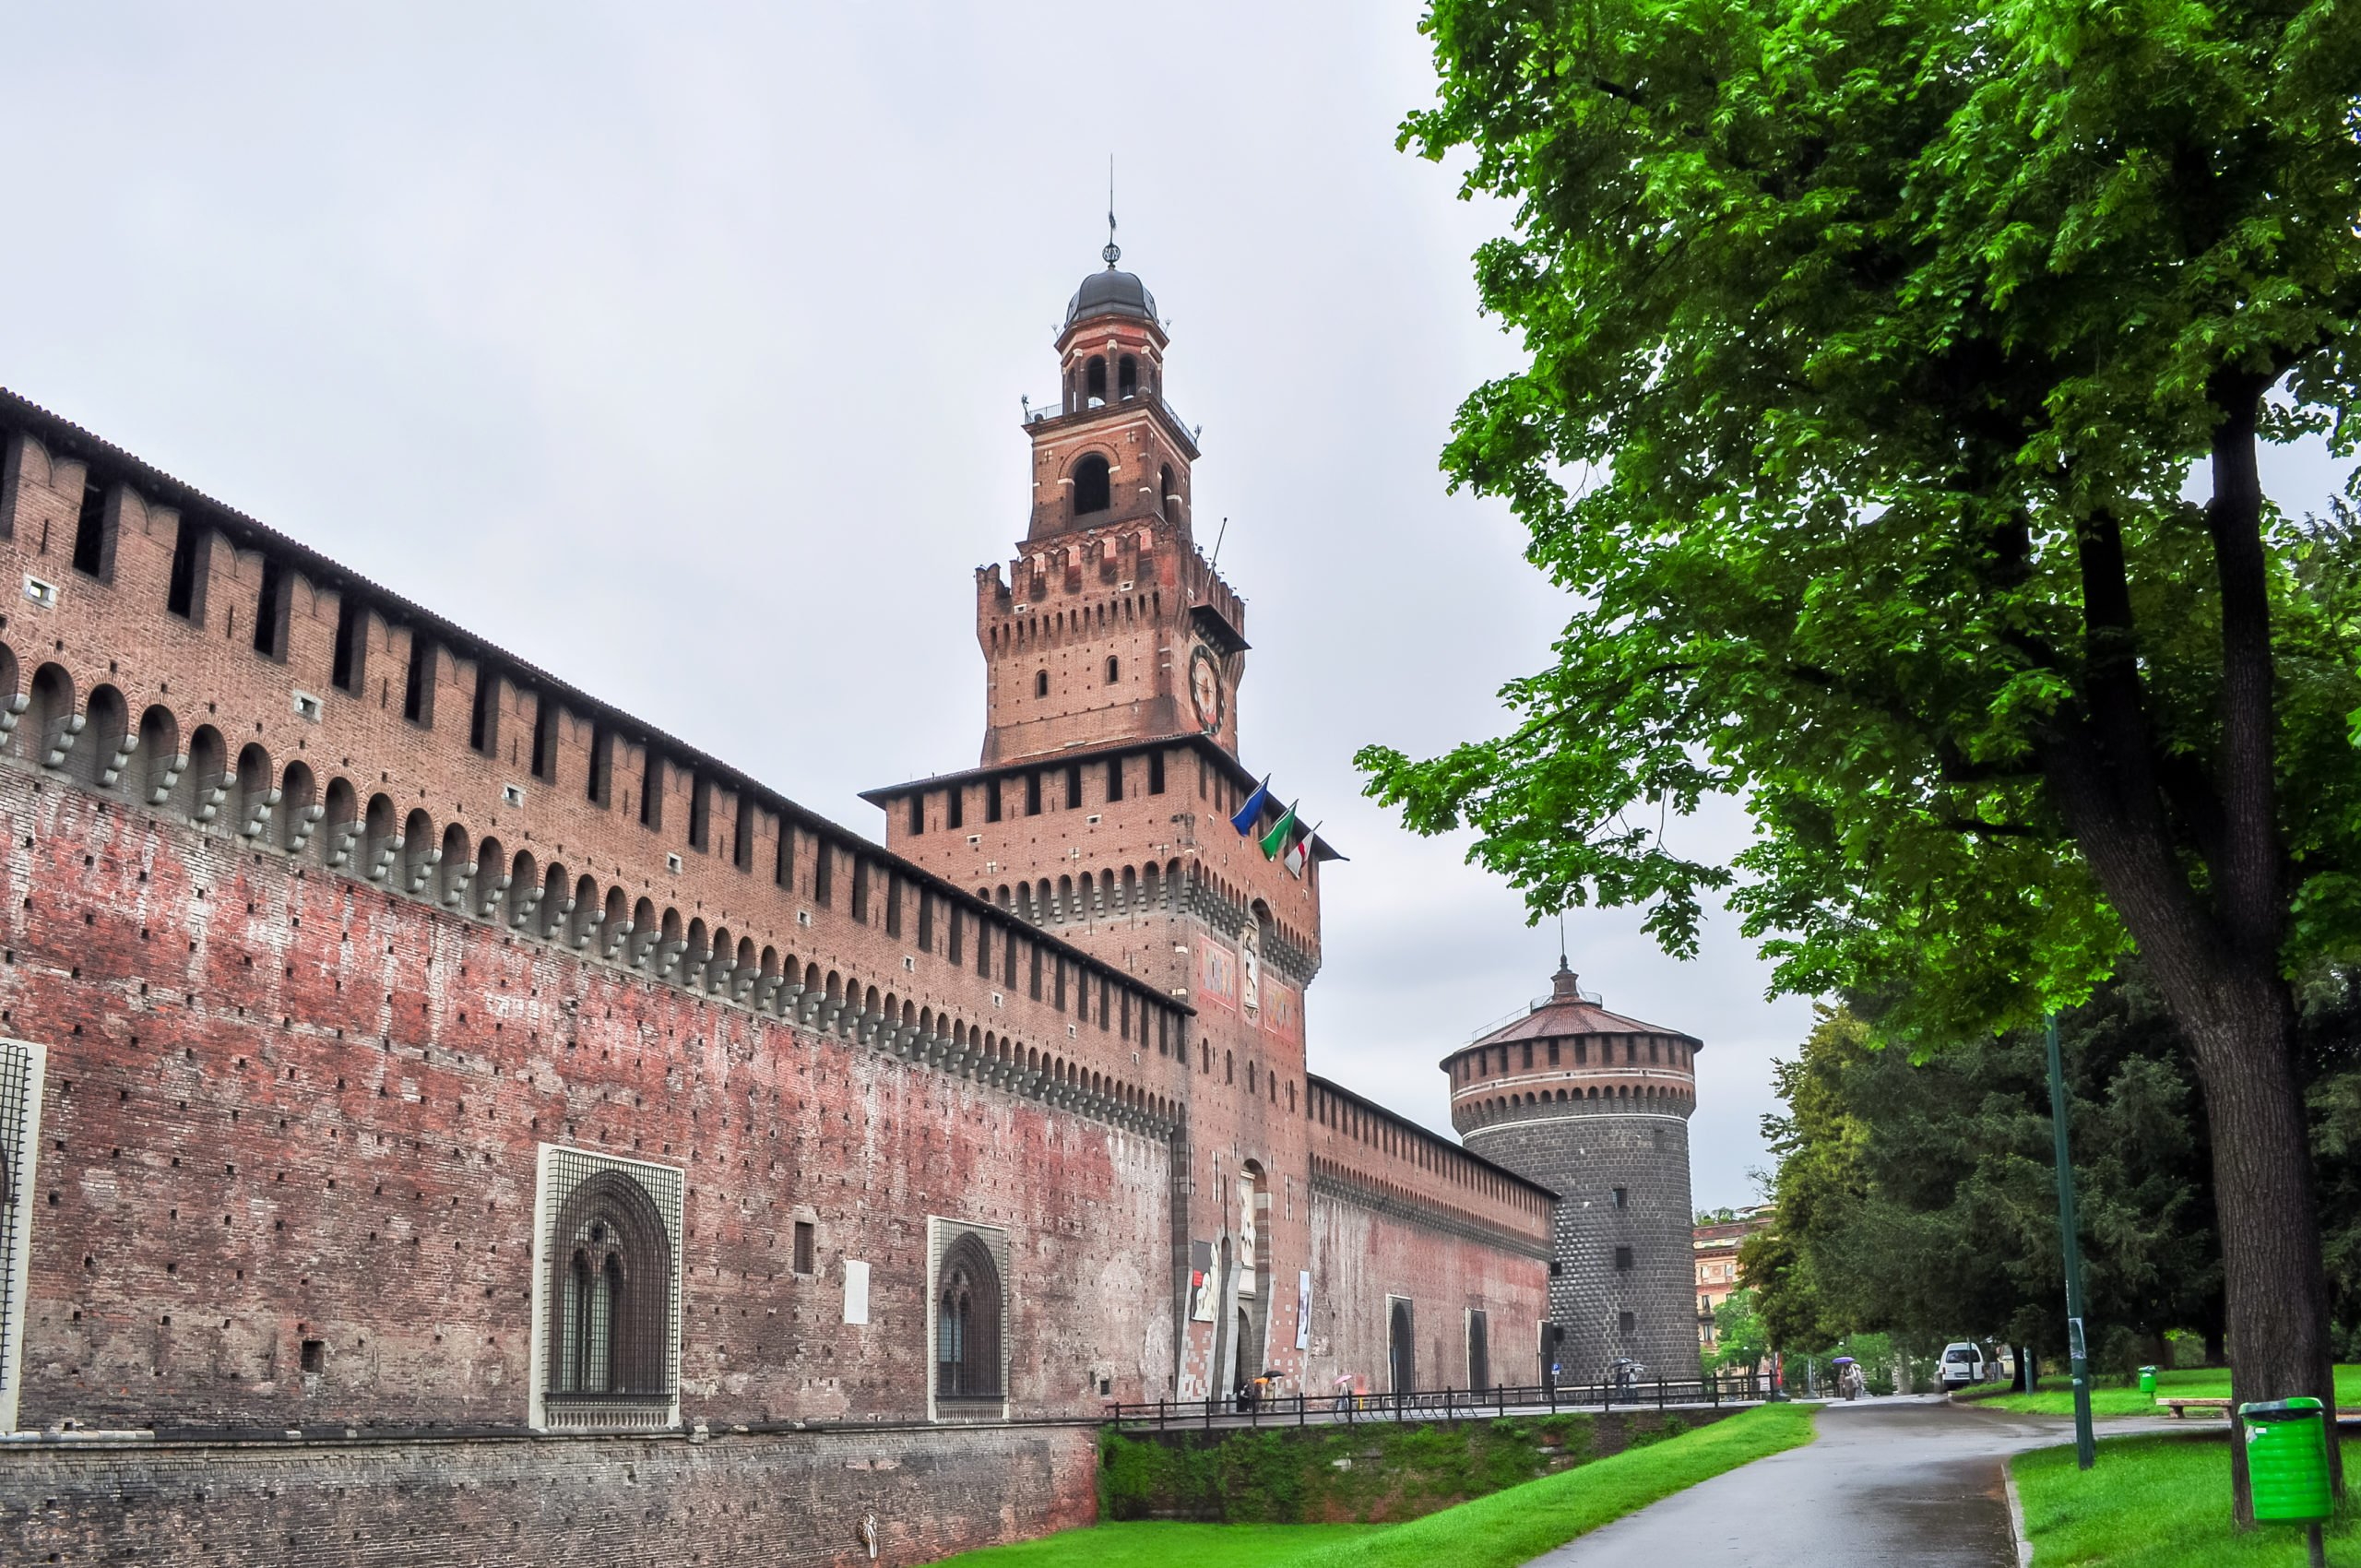 Visit Sforza Castle, Which Is The Home Of One Of The Most Famous Statue Of Michelangelo During The Milan Dome And Sforza Castle Half Day Tour